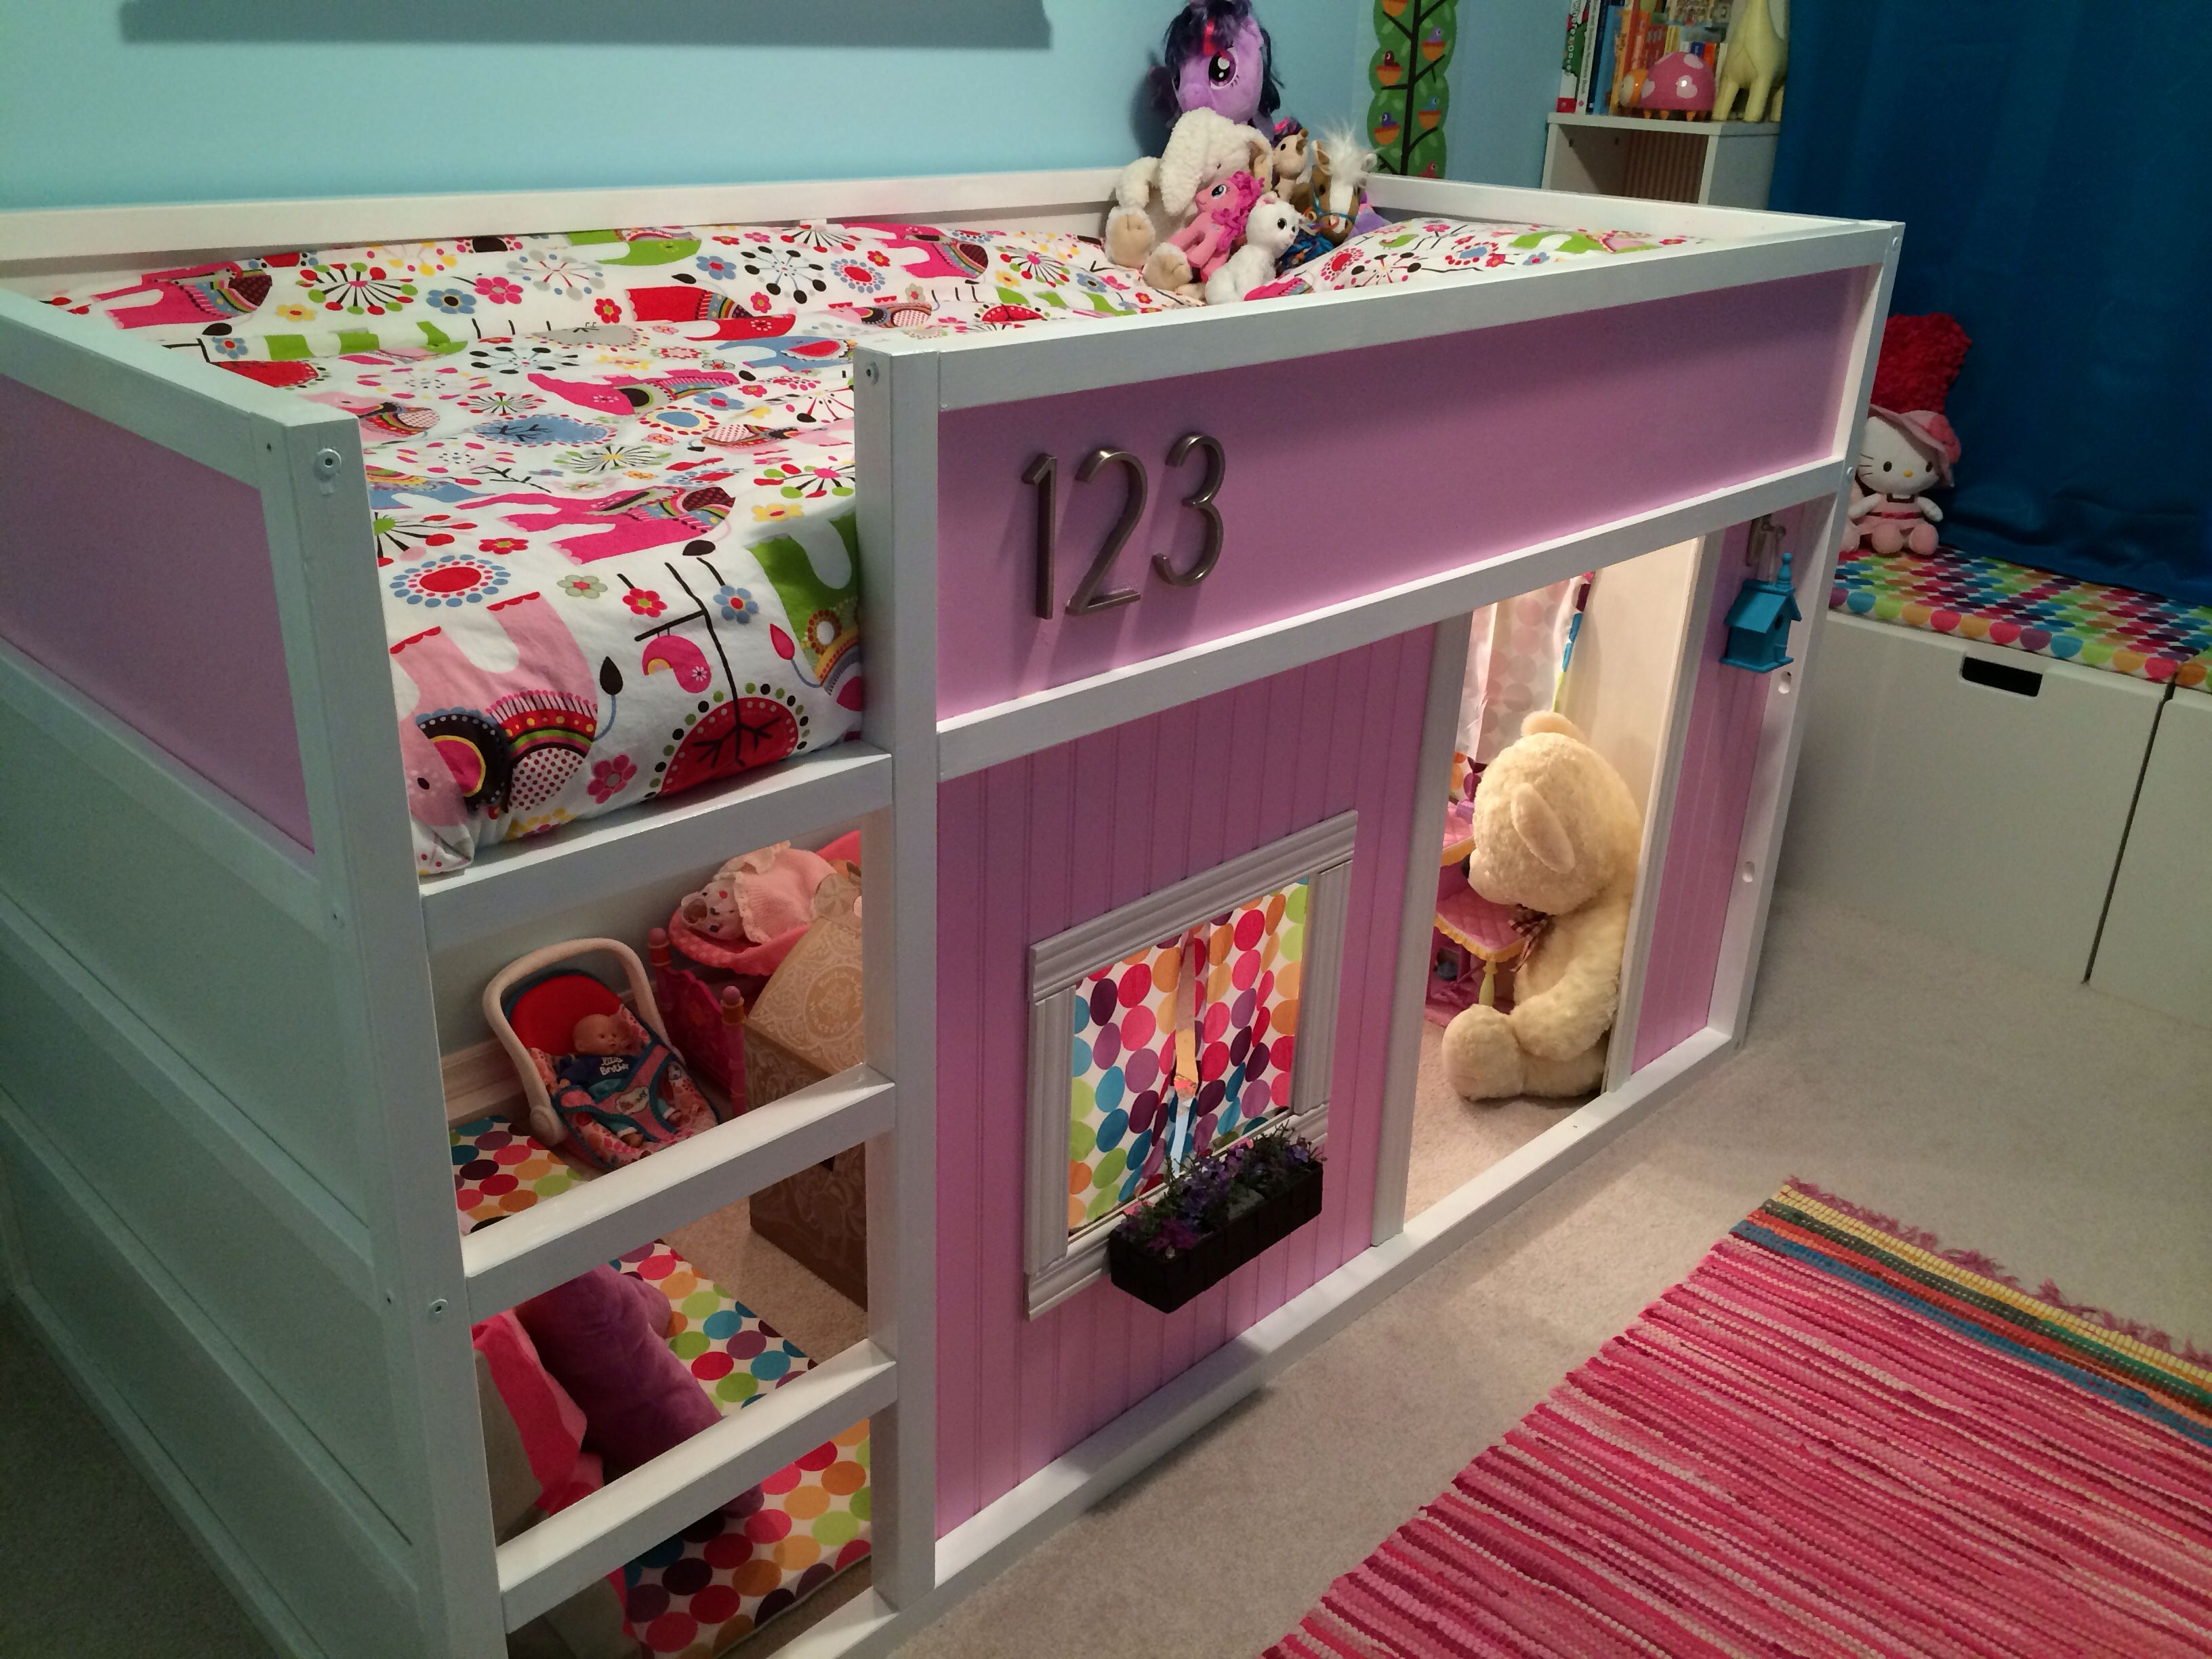 Ikea Muebles Infantiles Ikea Hack Loft Bed With A Custom Made Play House Home